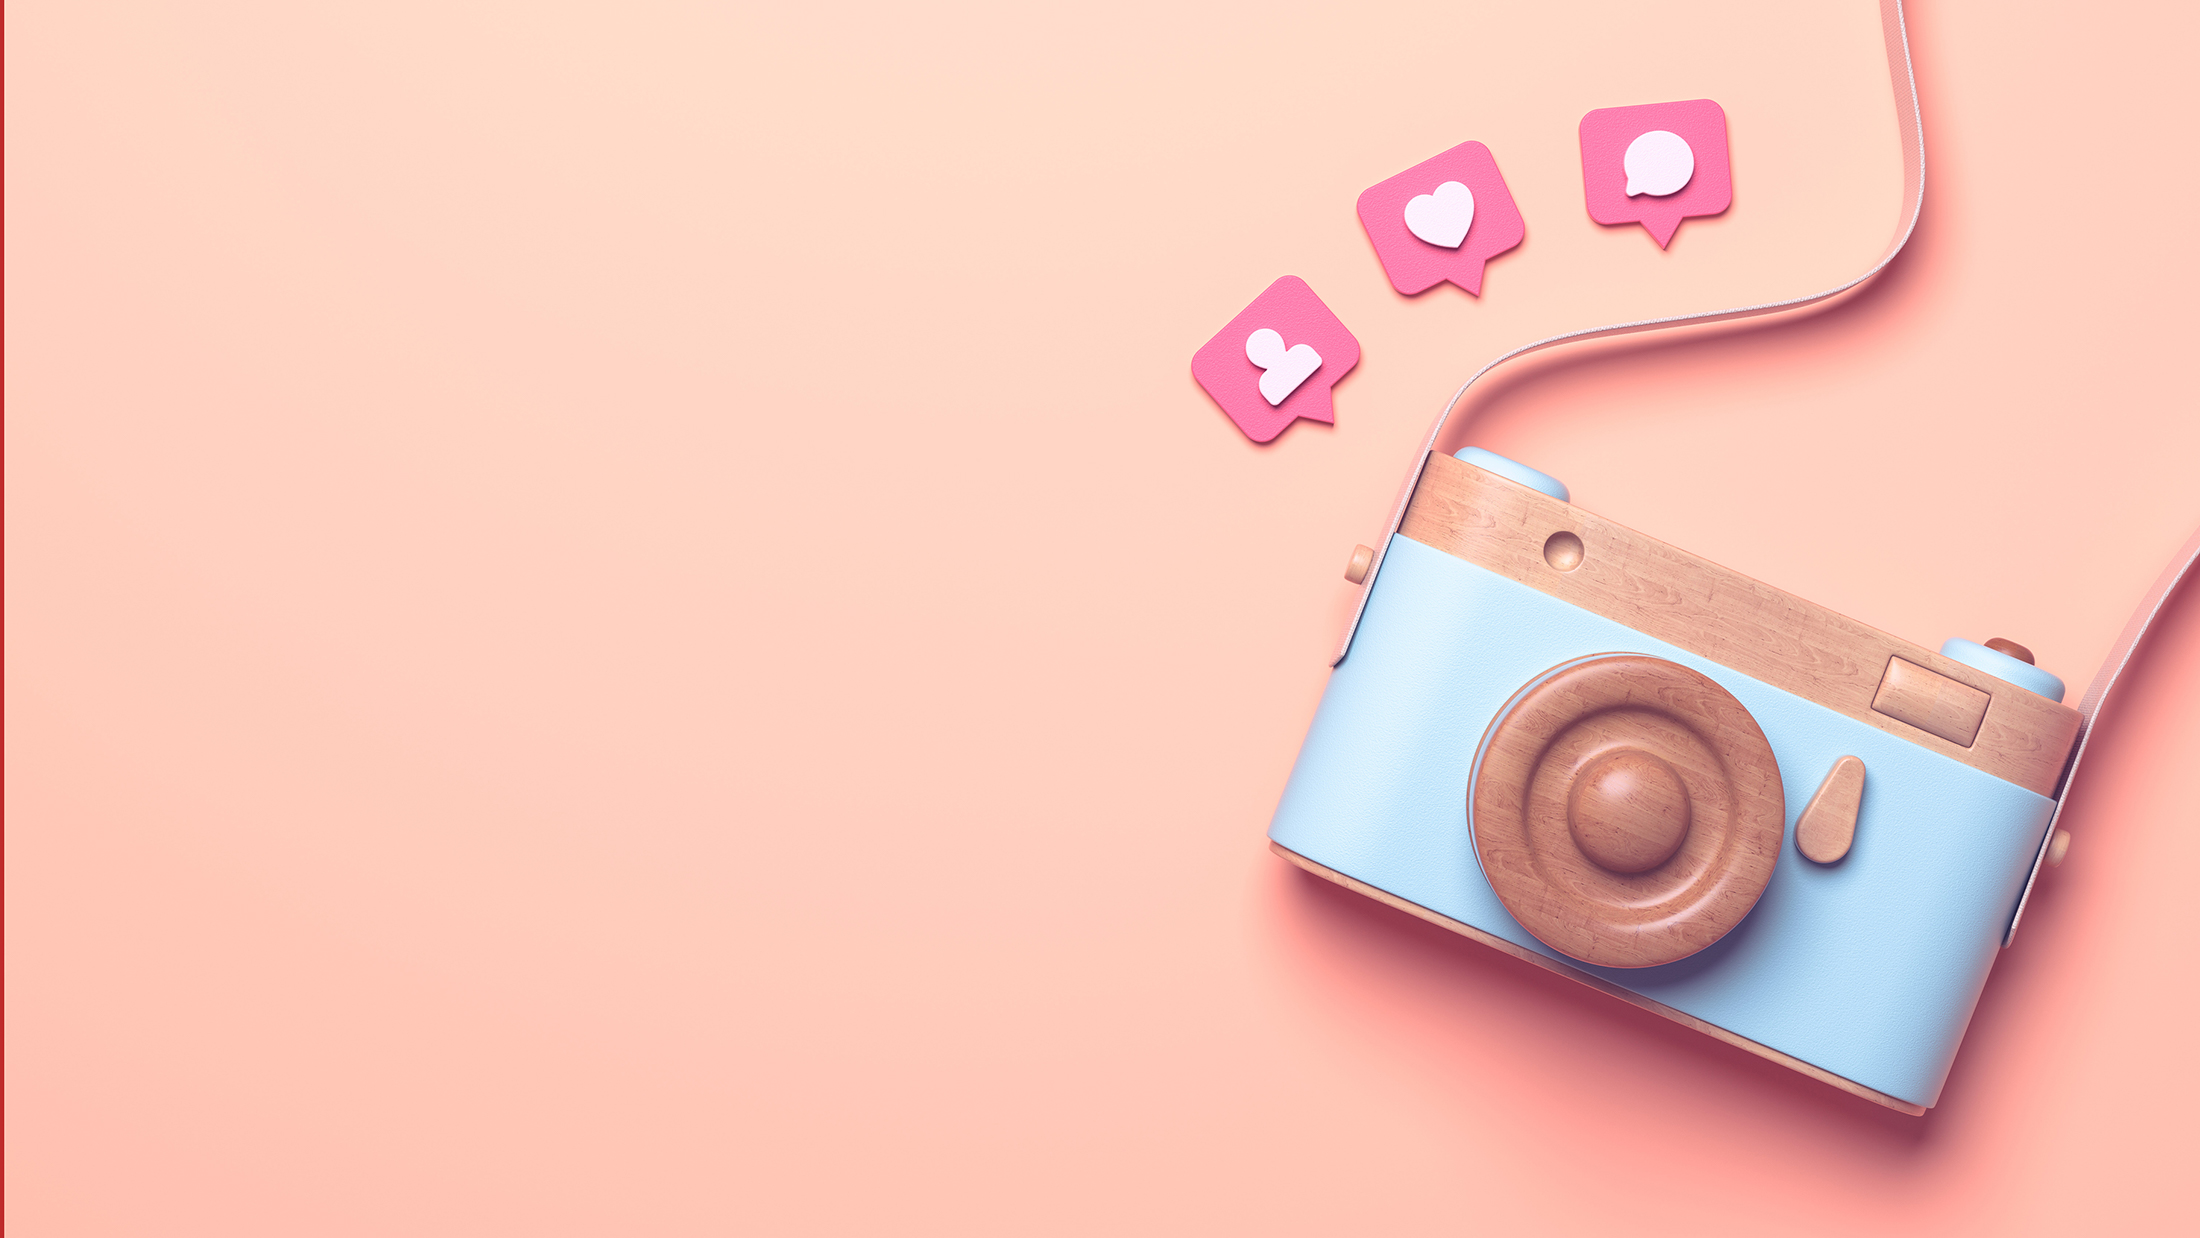 Buy Instagram Followers to Expand Your Business Opportunities